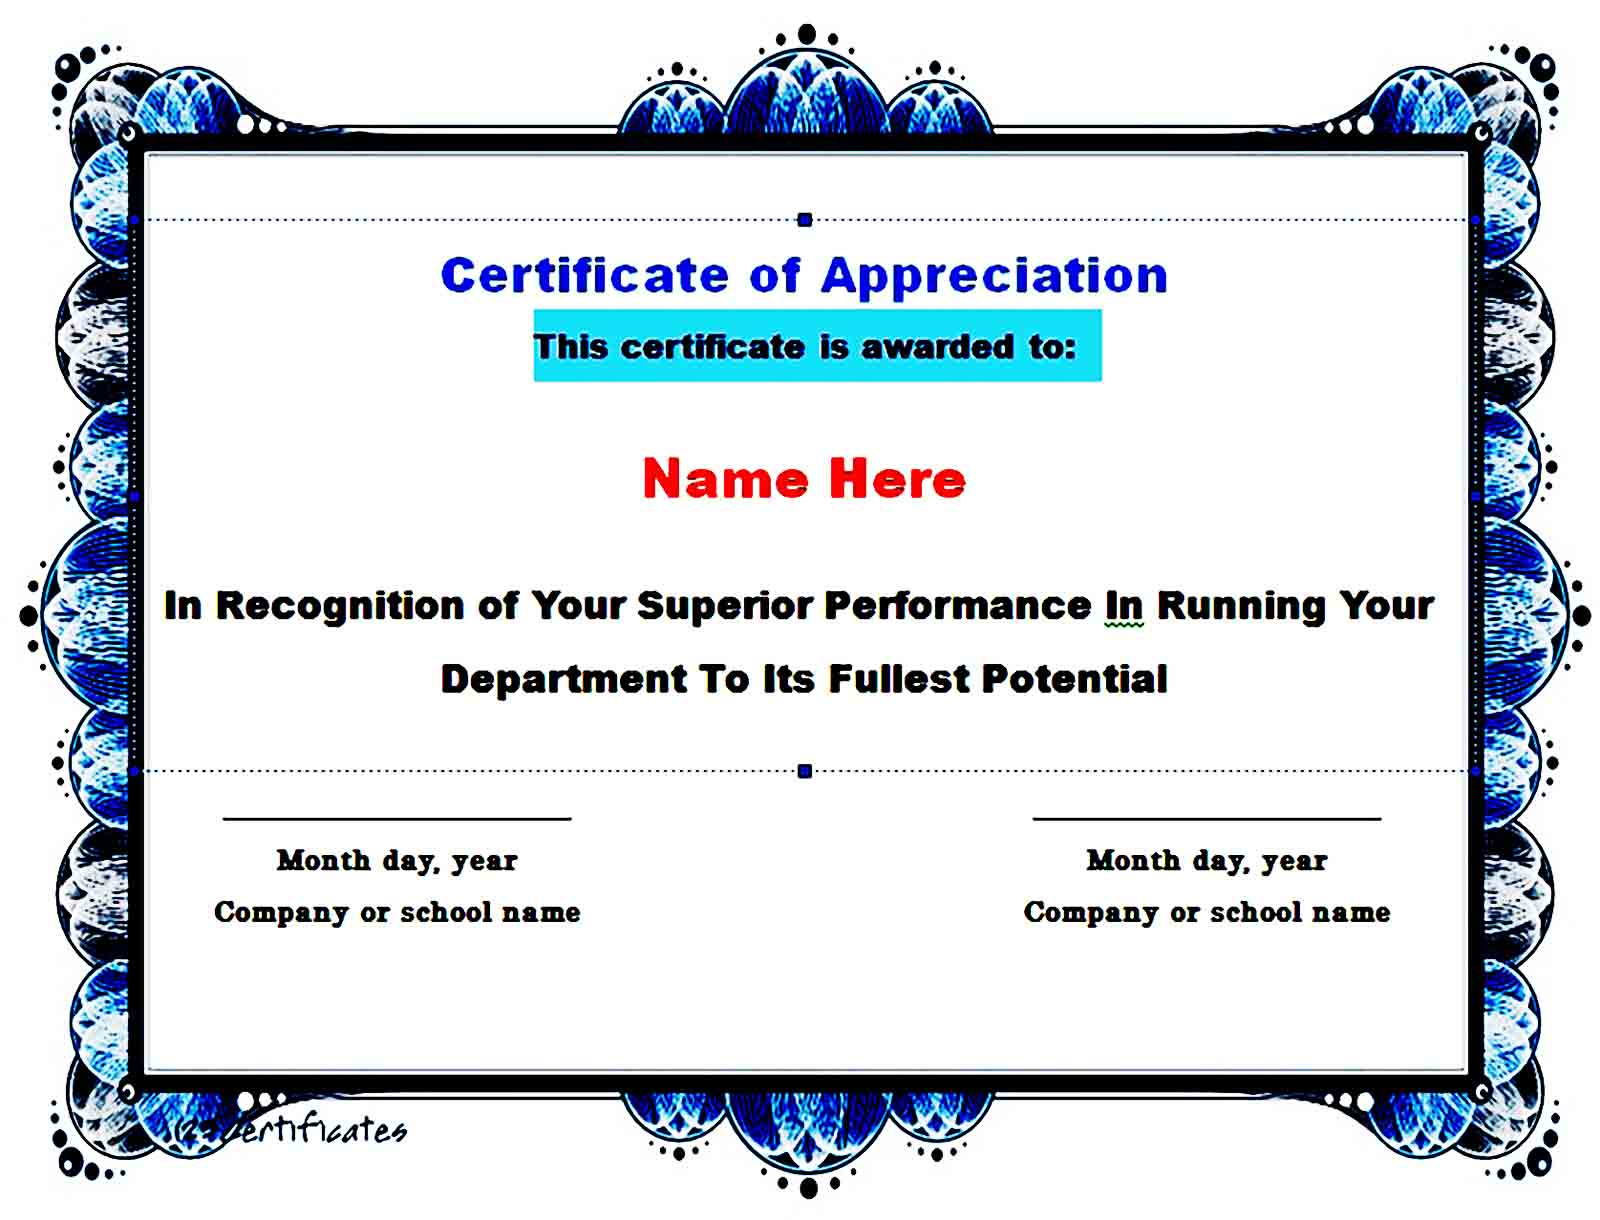 Certificate of Appreciation 15